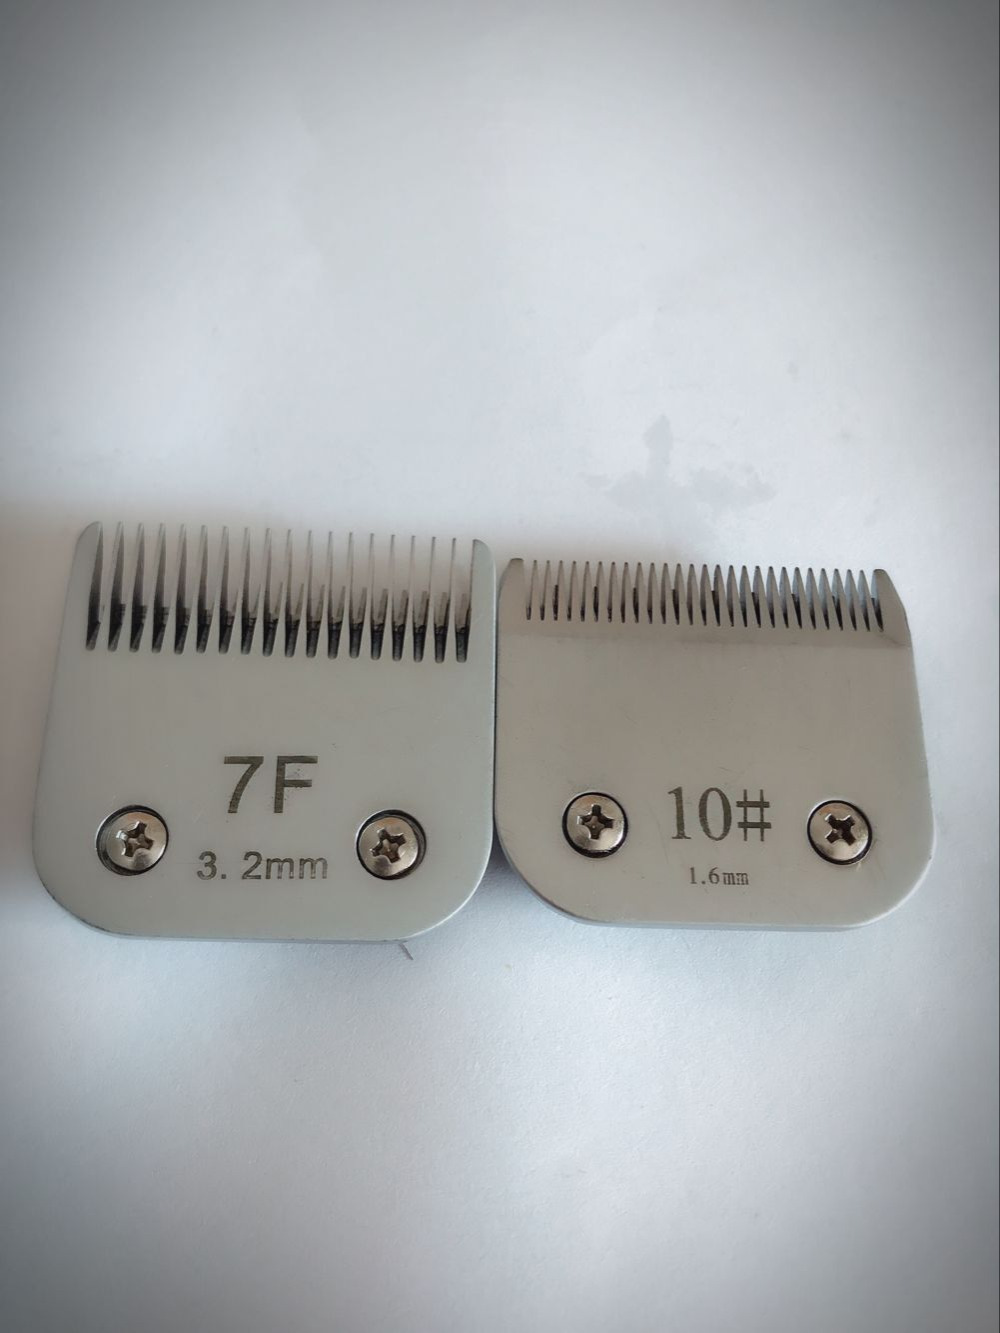 Professional pet clipper A5 blade 10#+7F fit most Andis and Oster clippers image